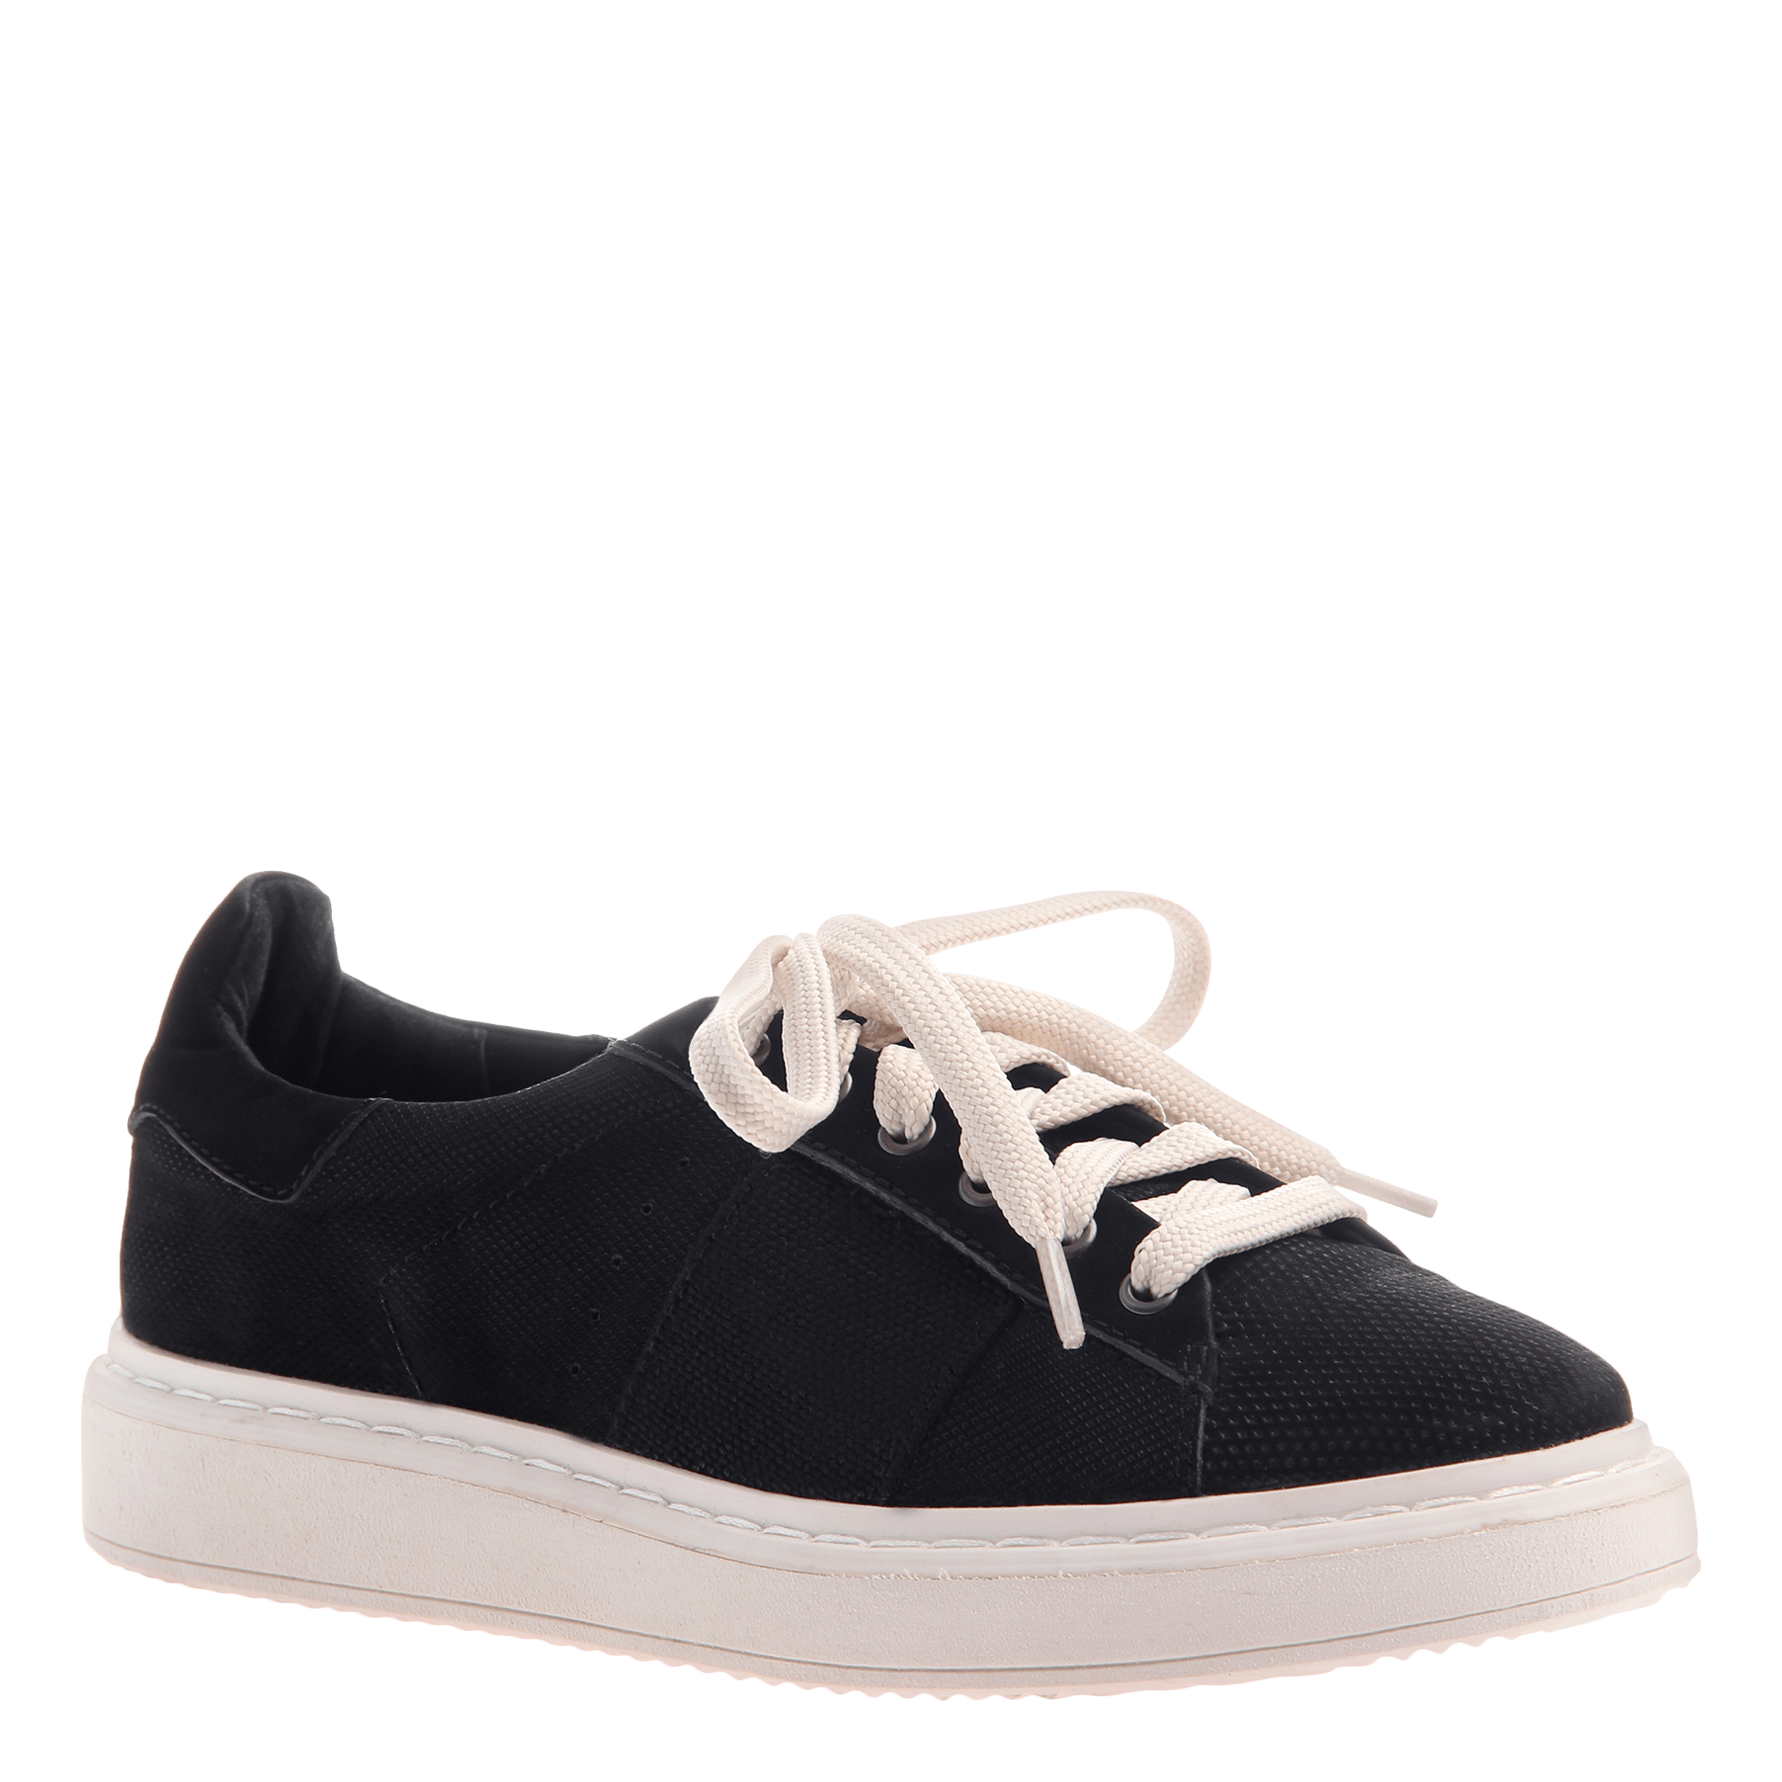 Normcore women's sneaker in black